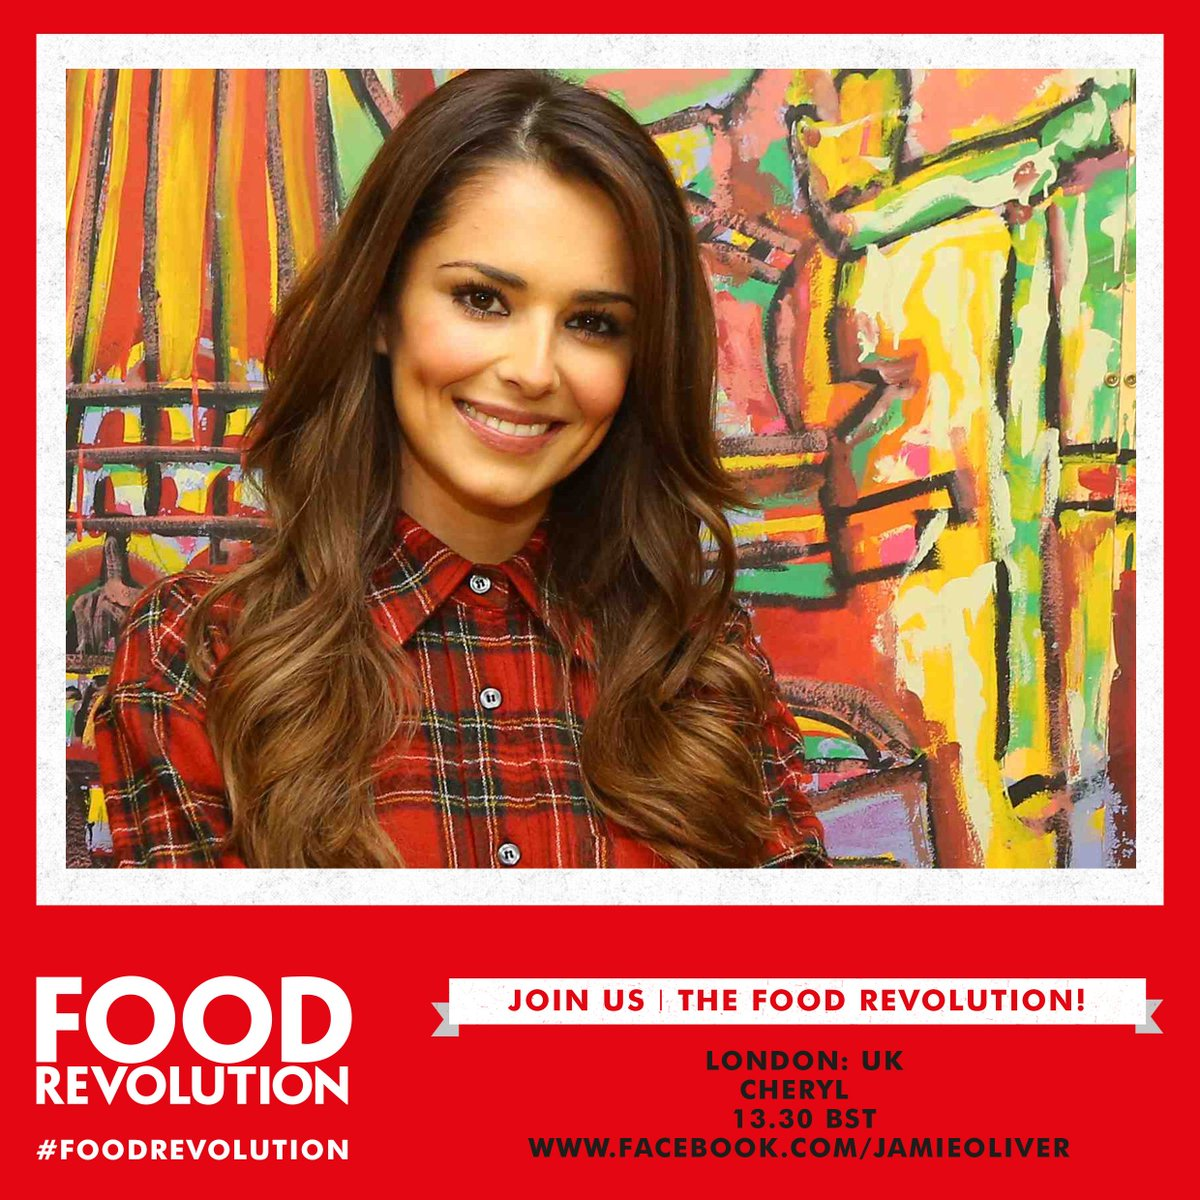 Are you ready @CherylOfficial lets see what those cooking skills are really like xx #FoodRevolution https://t.co/5dj1vbeRnm